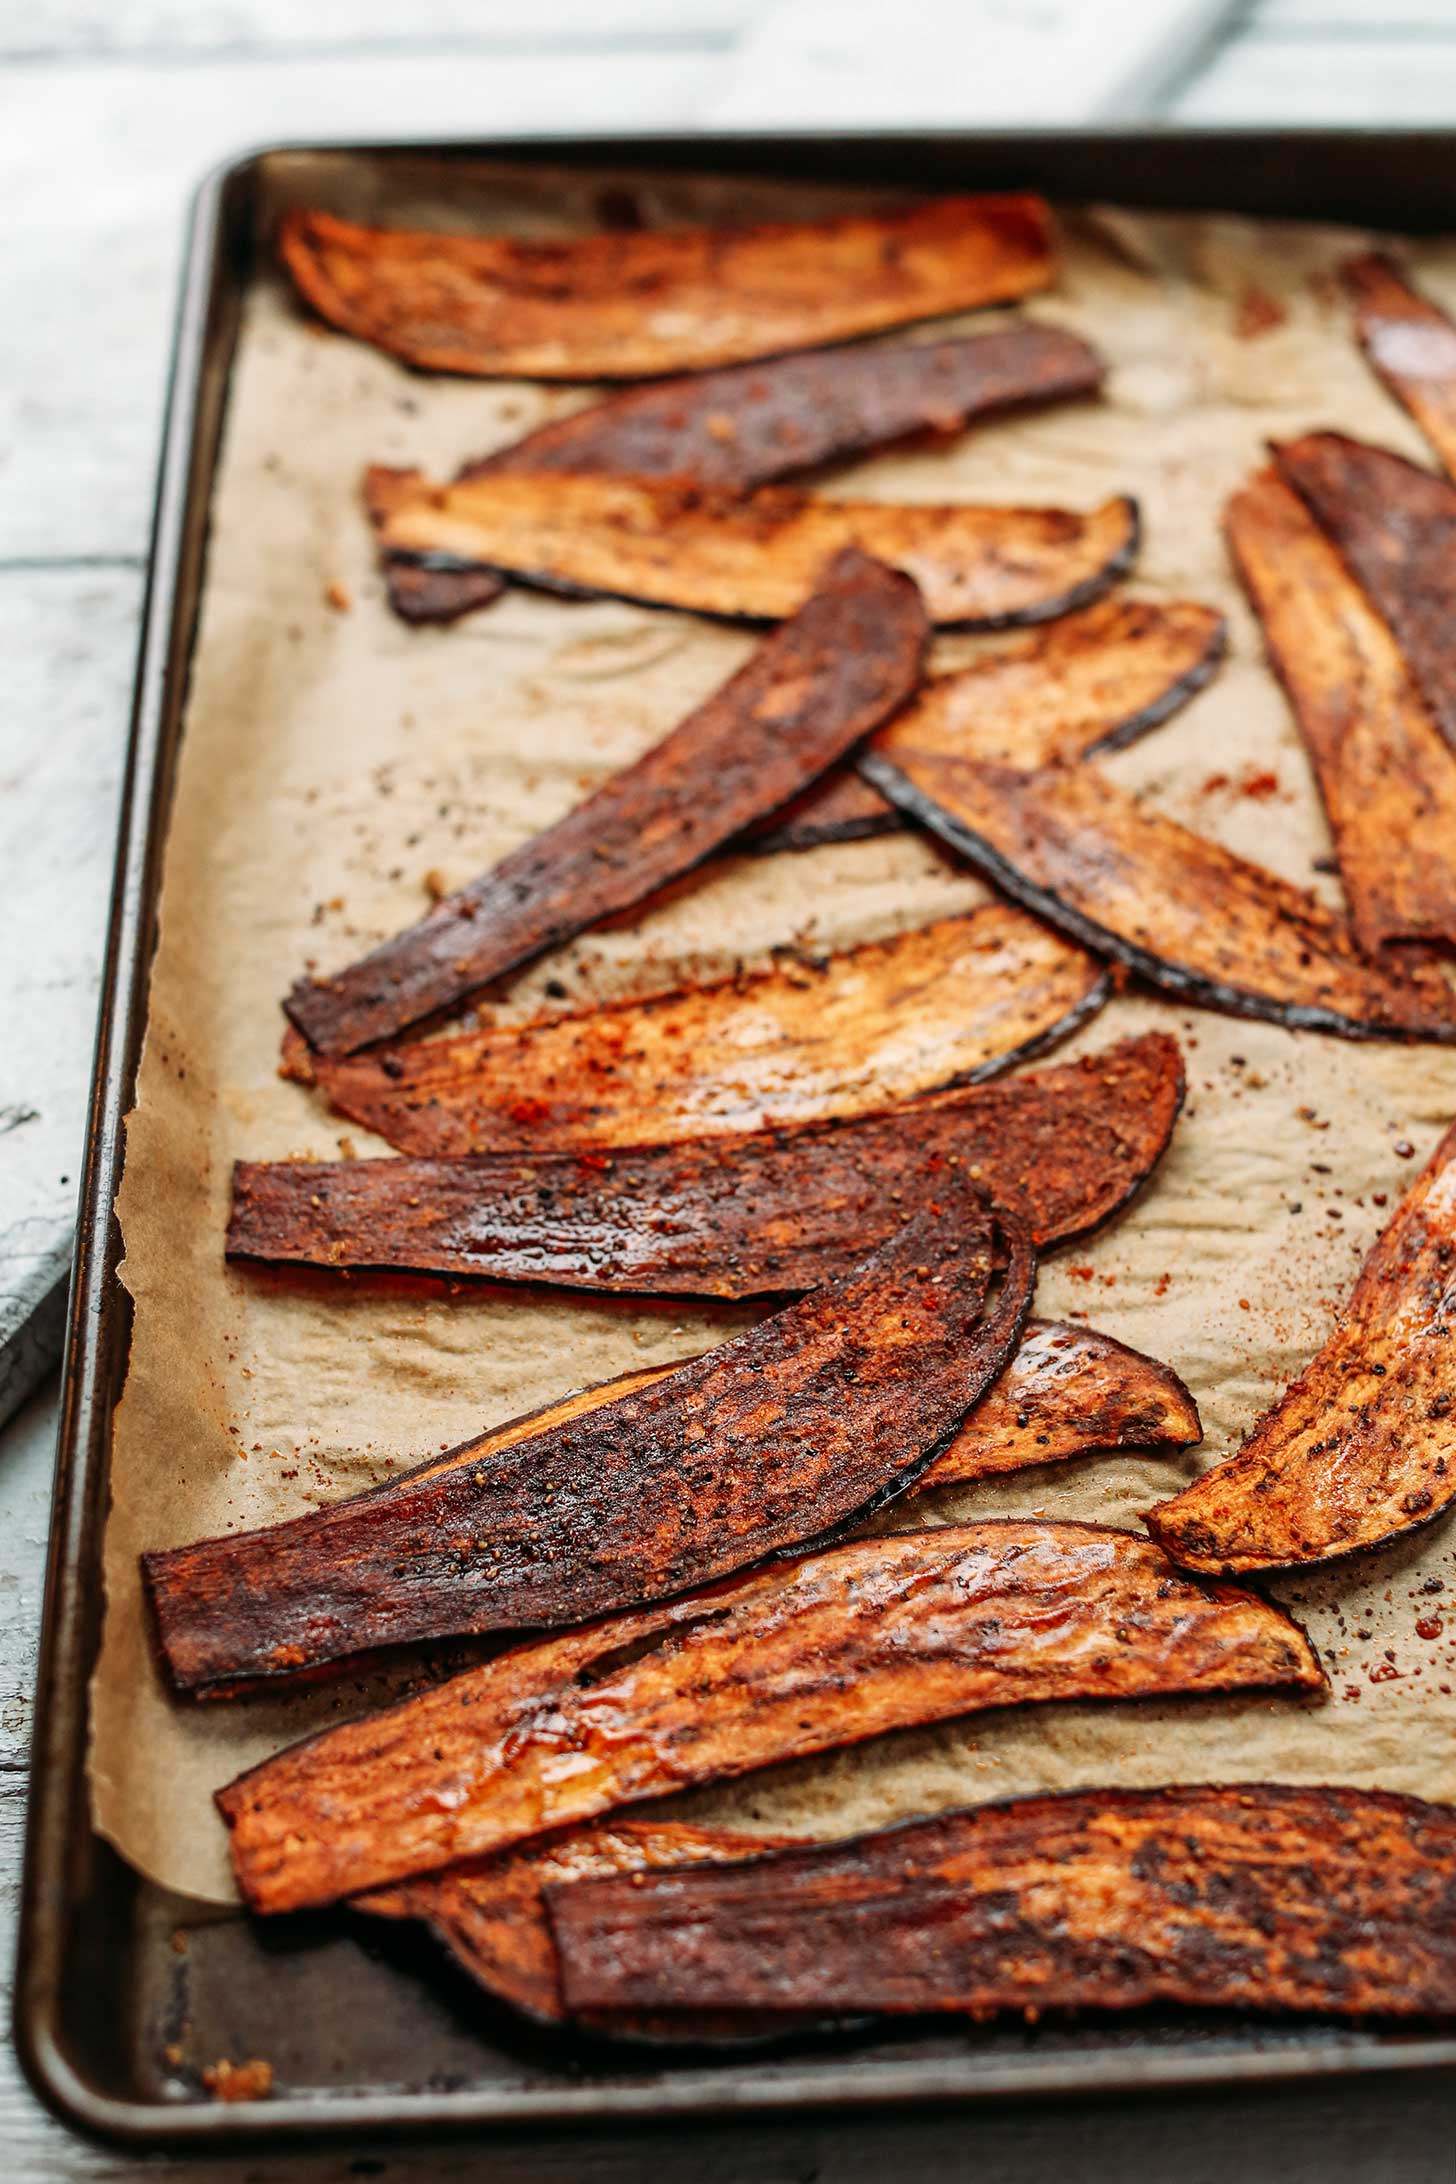 Parchment-lined baking sheet with Crispy Eggplant Bacon slices